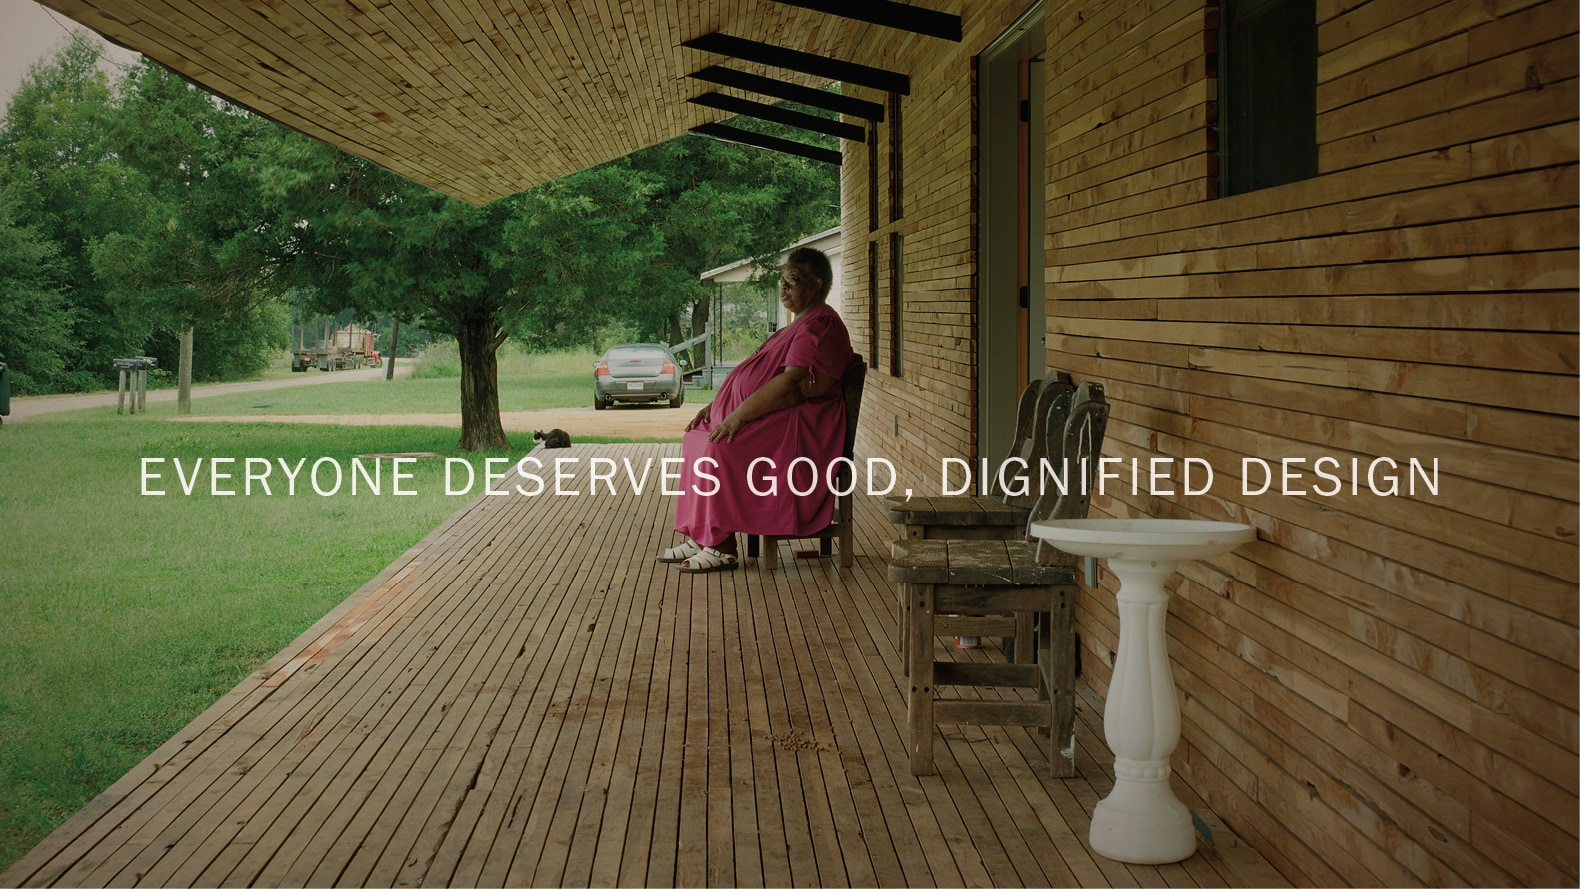 everyone deserves good, dignified design